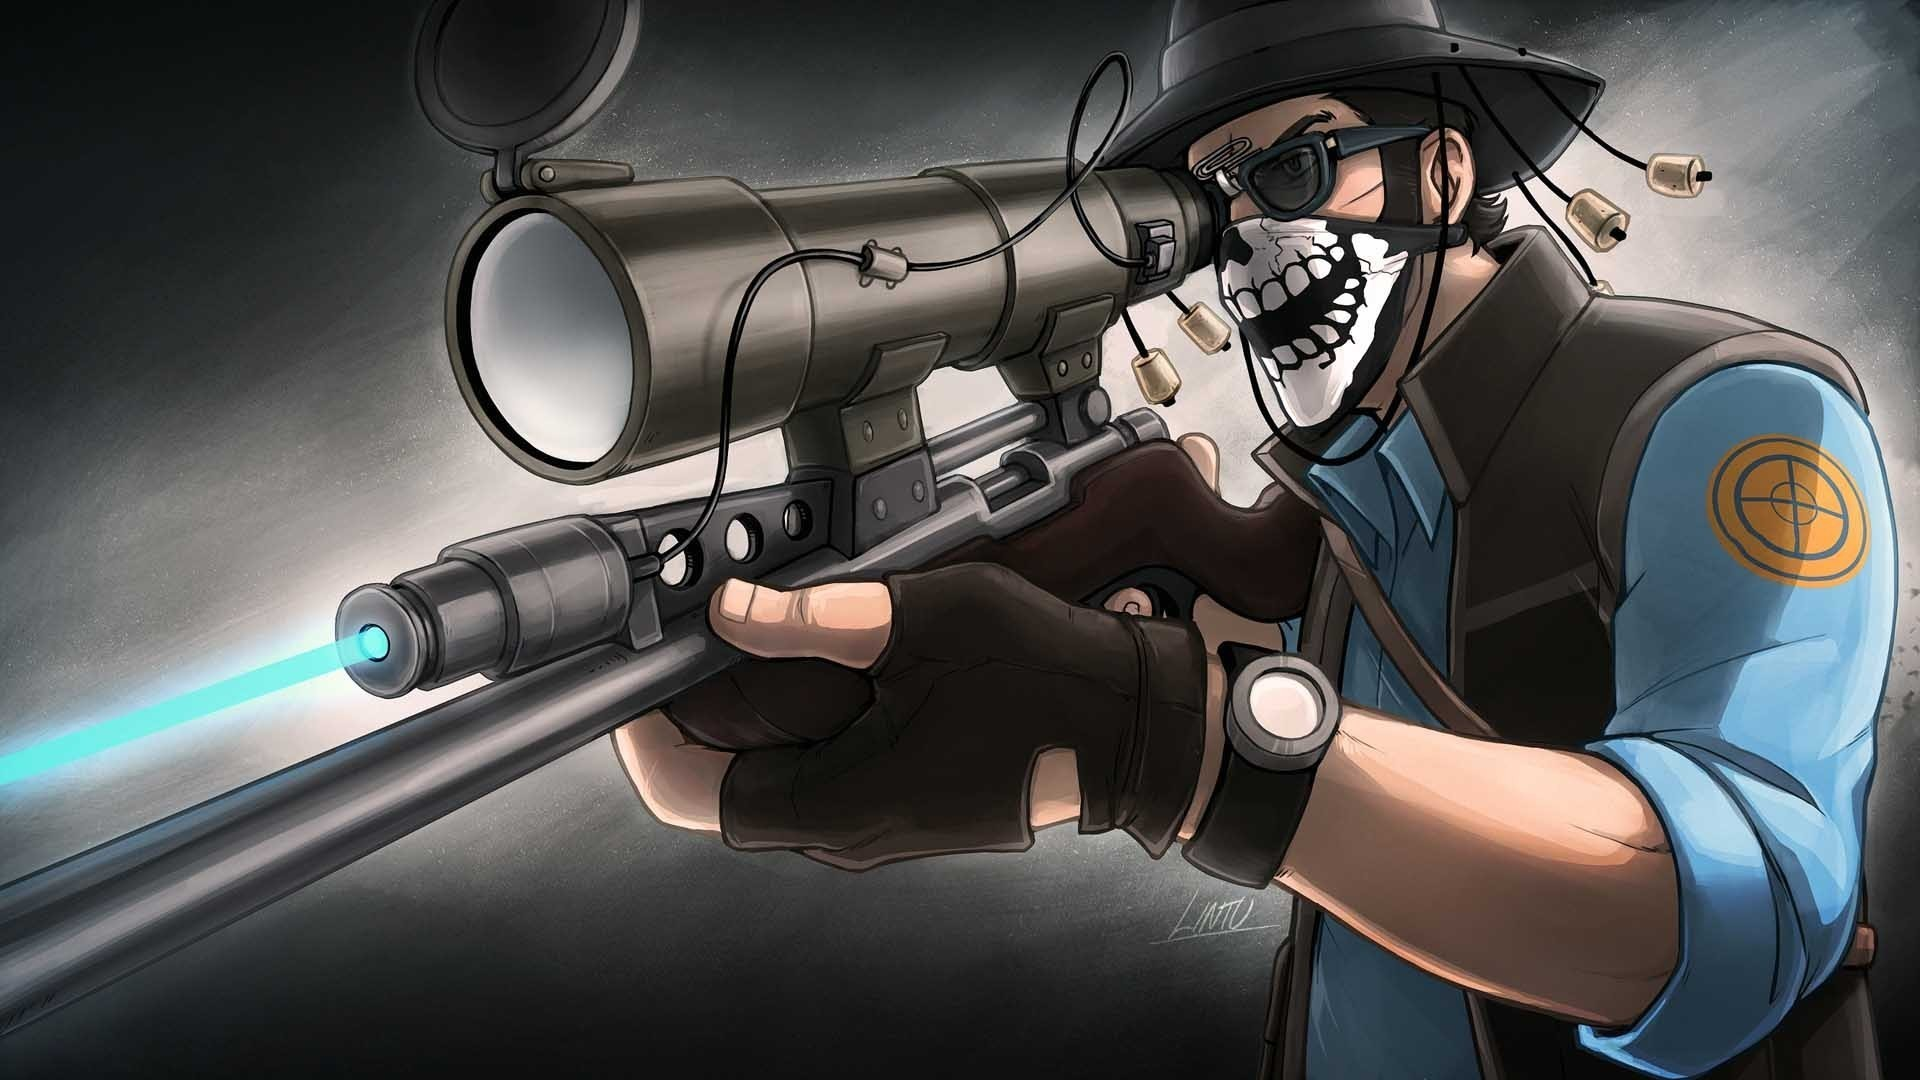 330 Team Fortress 2 HD Wallpapers   Backgrounds – Wallpaper Abyss   Images  Wallpapers   Pinterest   Team fortress, Hd wallpaper and Wallpaper  backgrounds